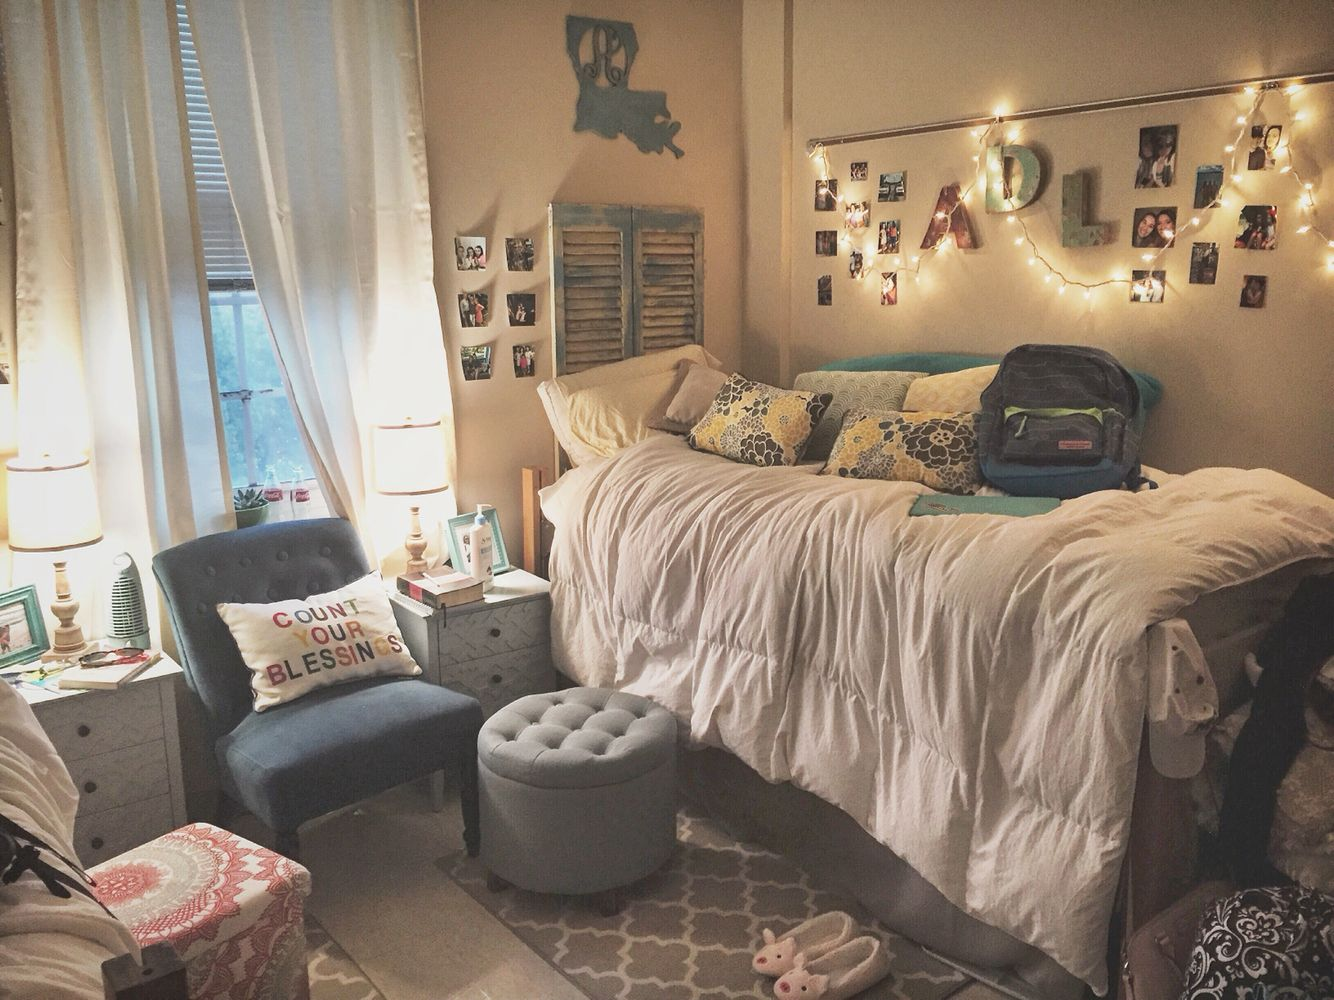 College dorms pinterest the image kid for Bedroom ideas pinterest